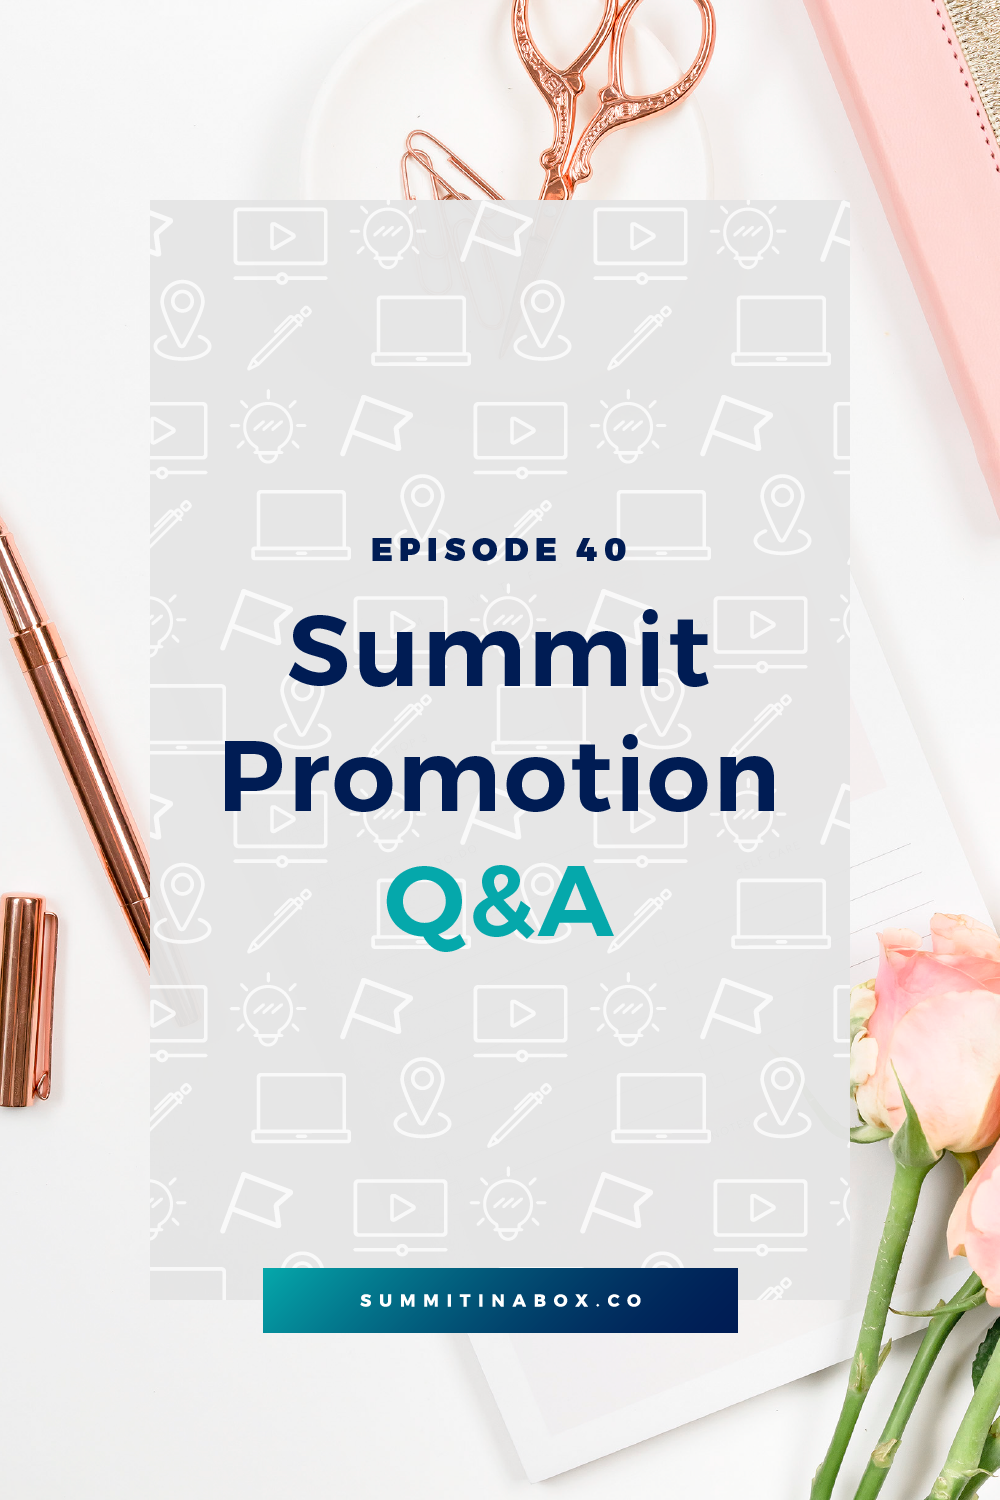 Let's talk virtual summit promotion! Including when to start, what resources to provide speakers, unique ways to promote, and when to expect the most signups.